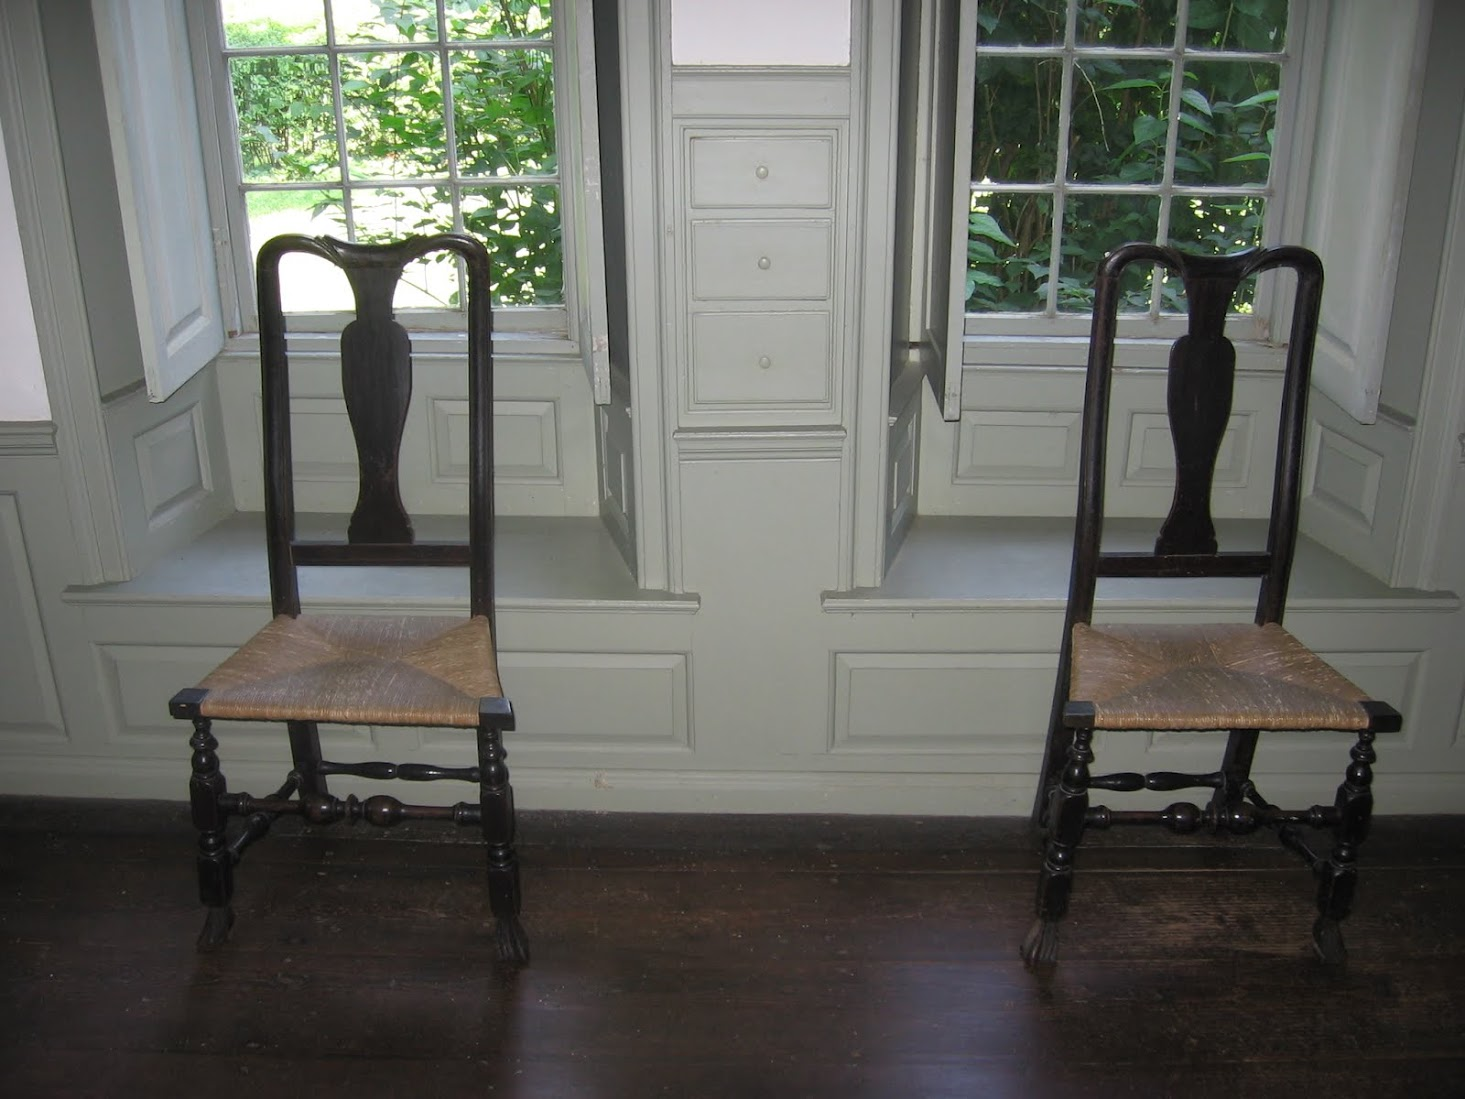 Charles Phelps purchased the above chairs from Samuel Gaylord, Jr., a local joiner.